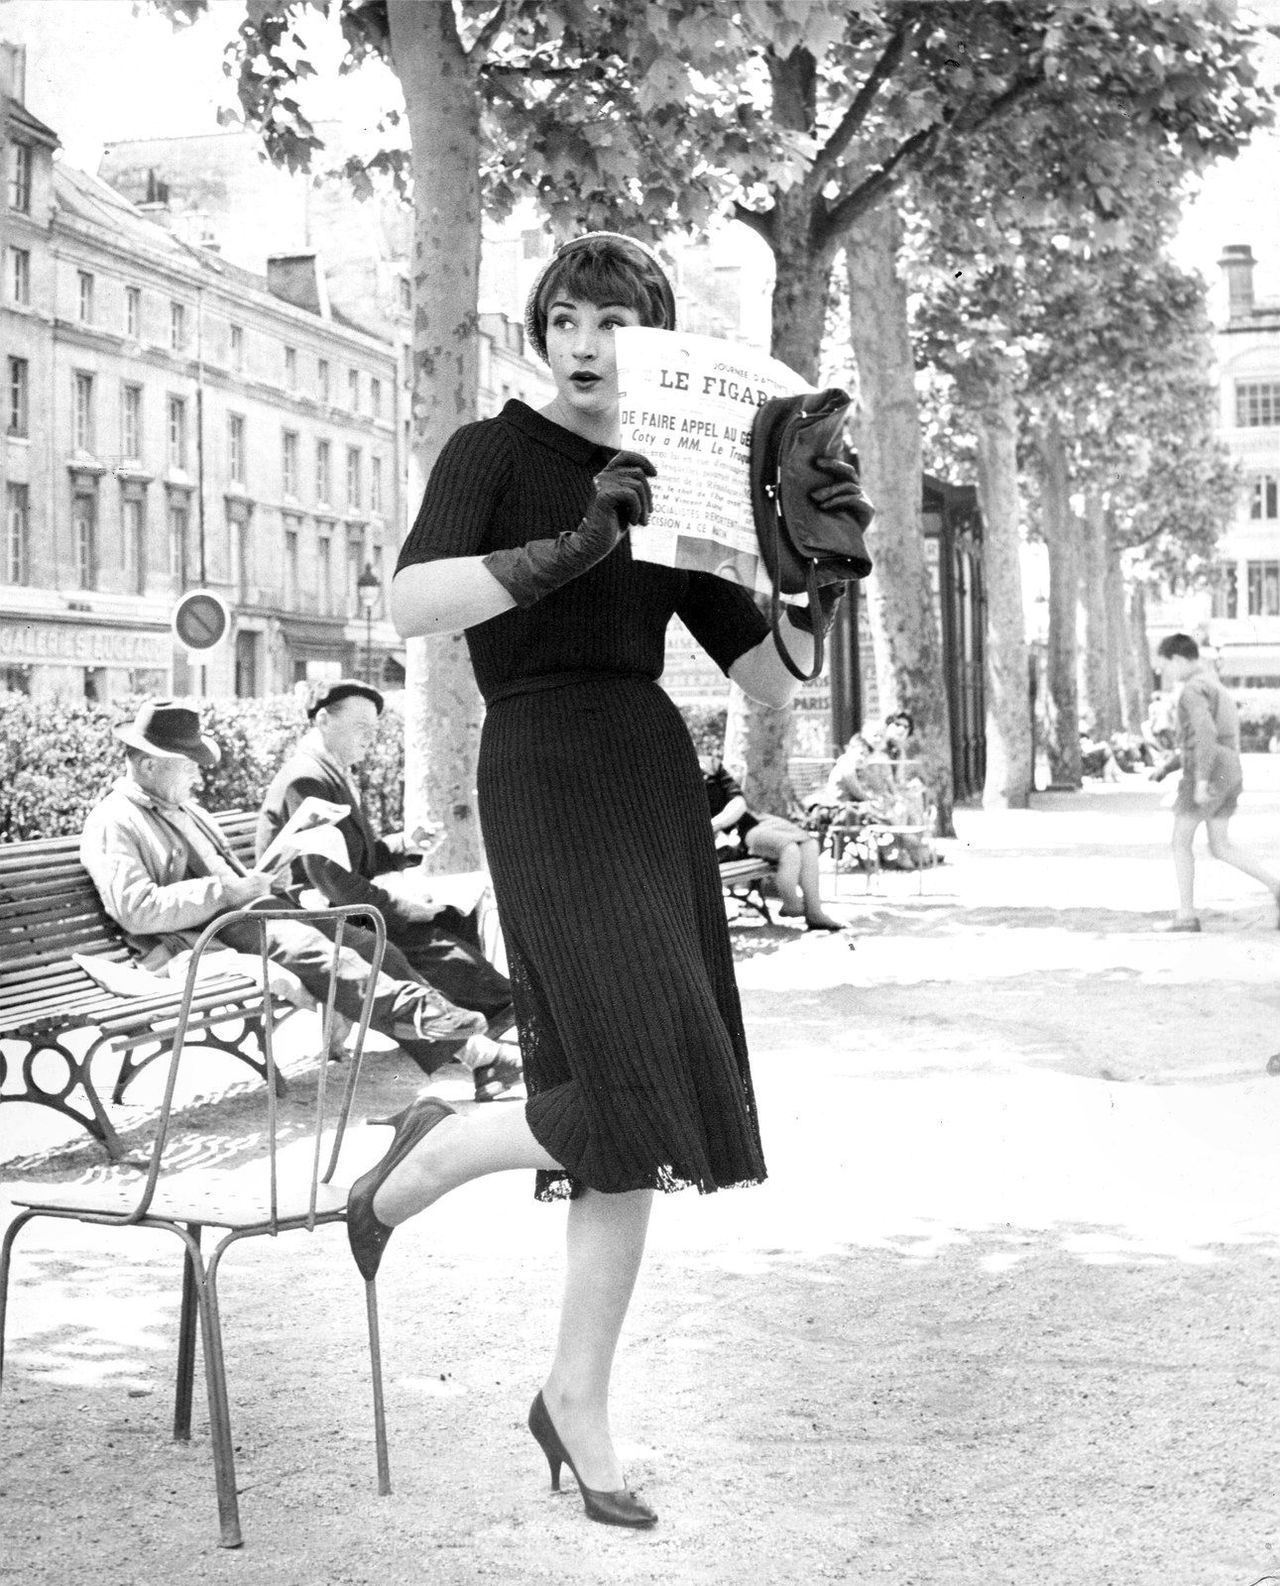 pose Paris fashions 1960\'s photo by Kenneth Heilbron | Story Board ...